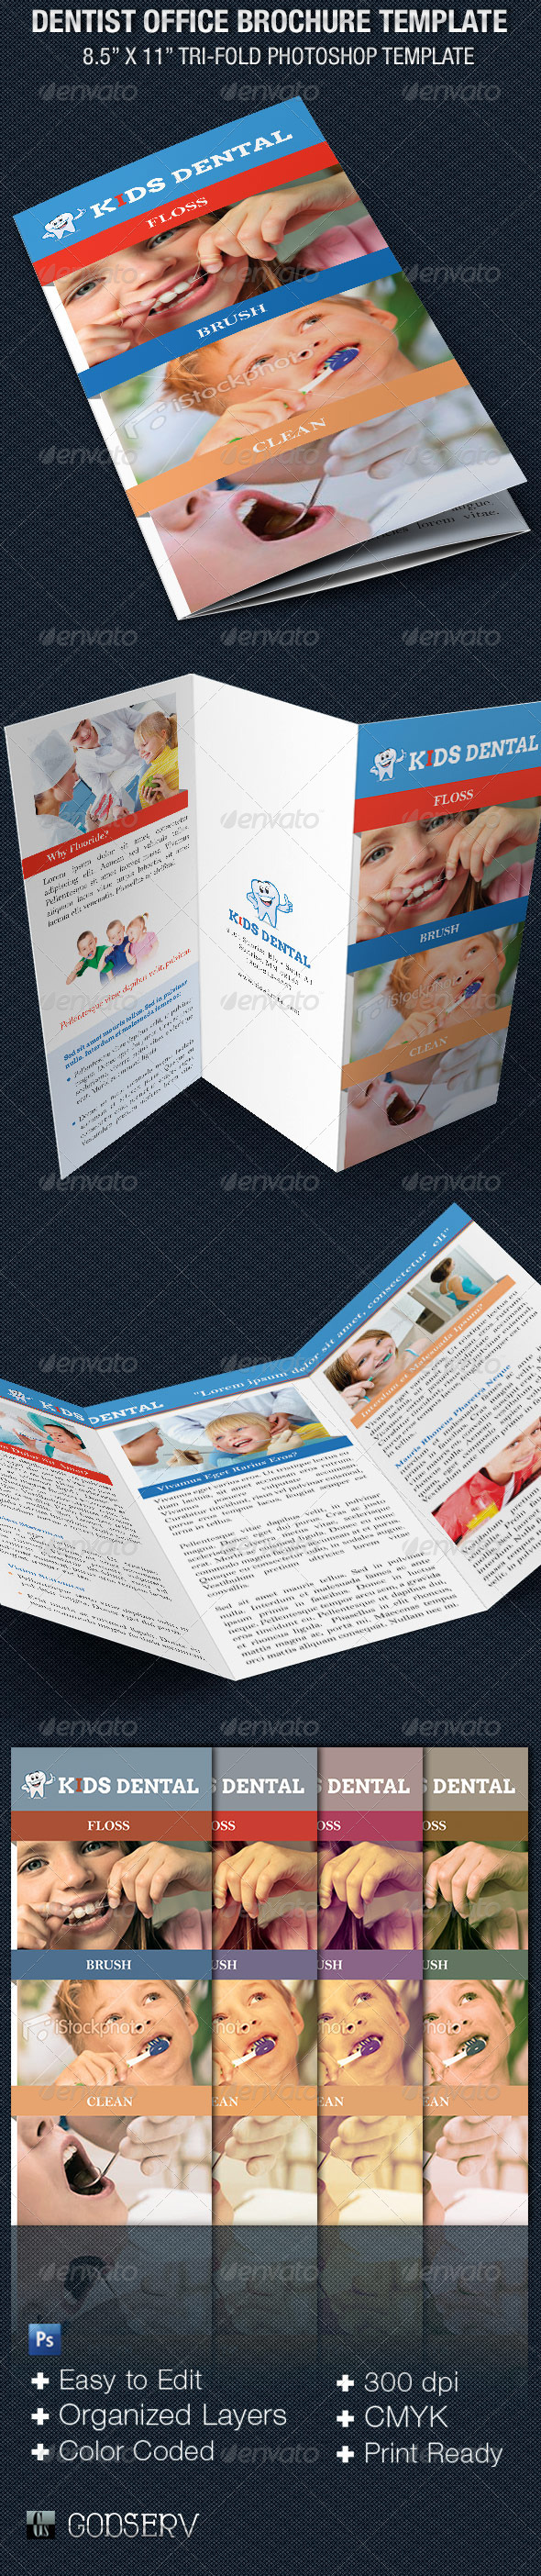 Brochure template dentist stock photos for Office brochure templates